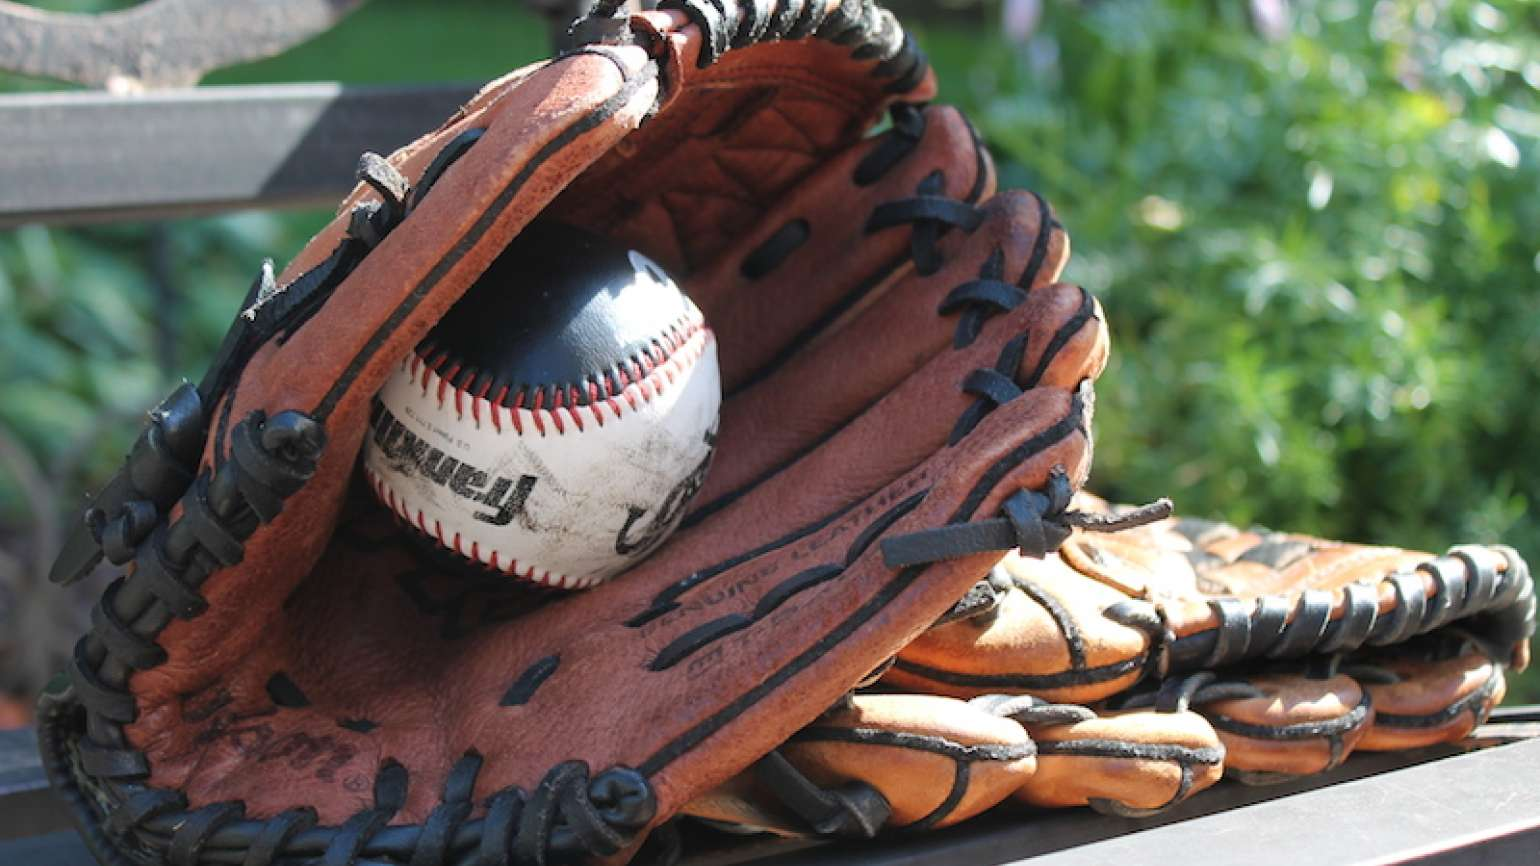 A baseball glove at the park